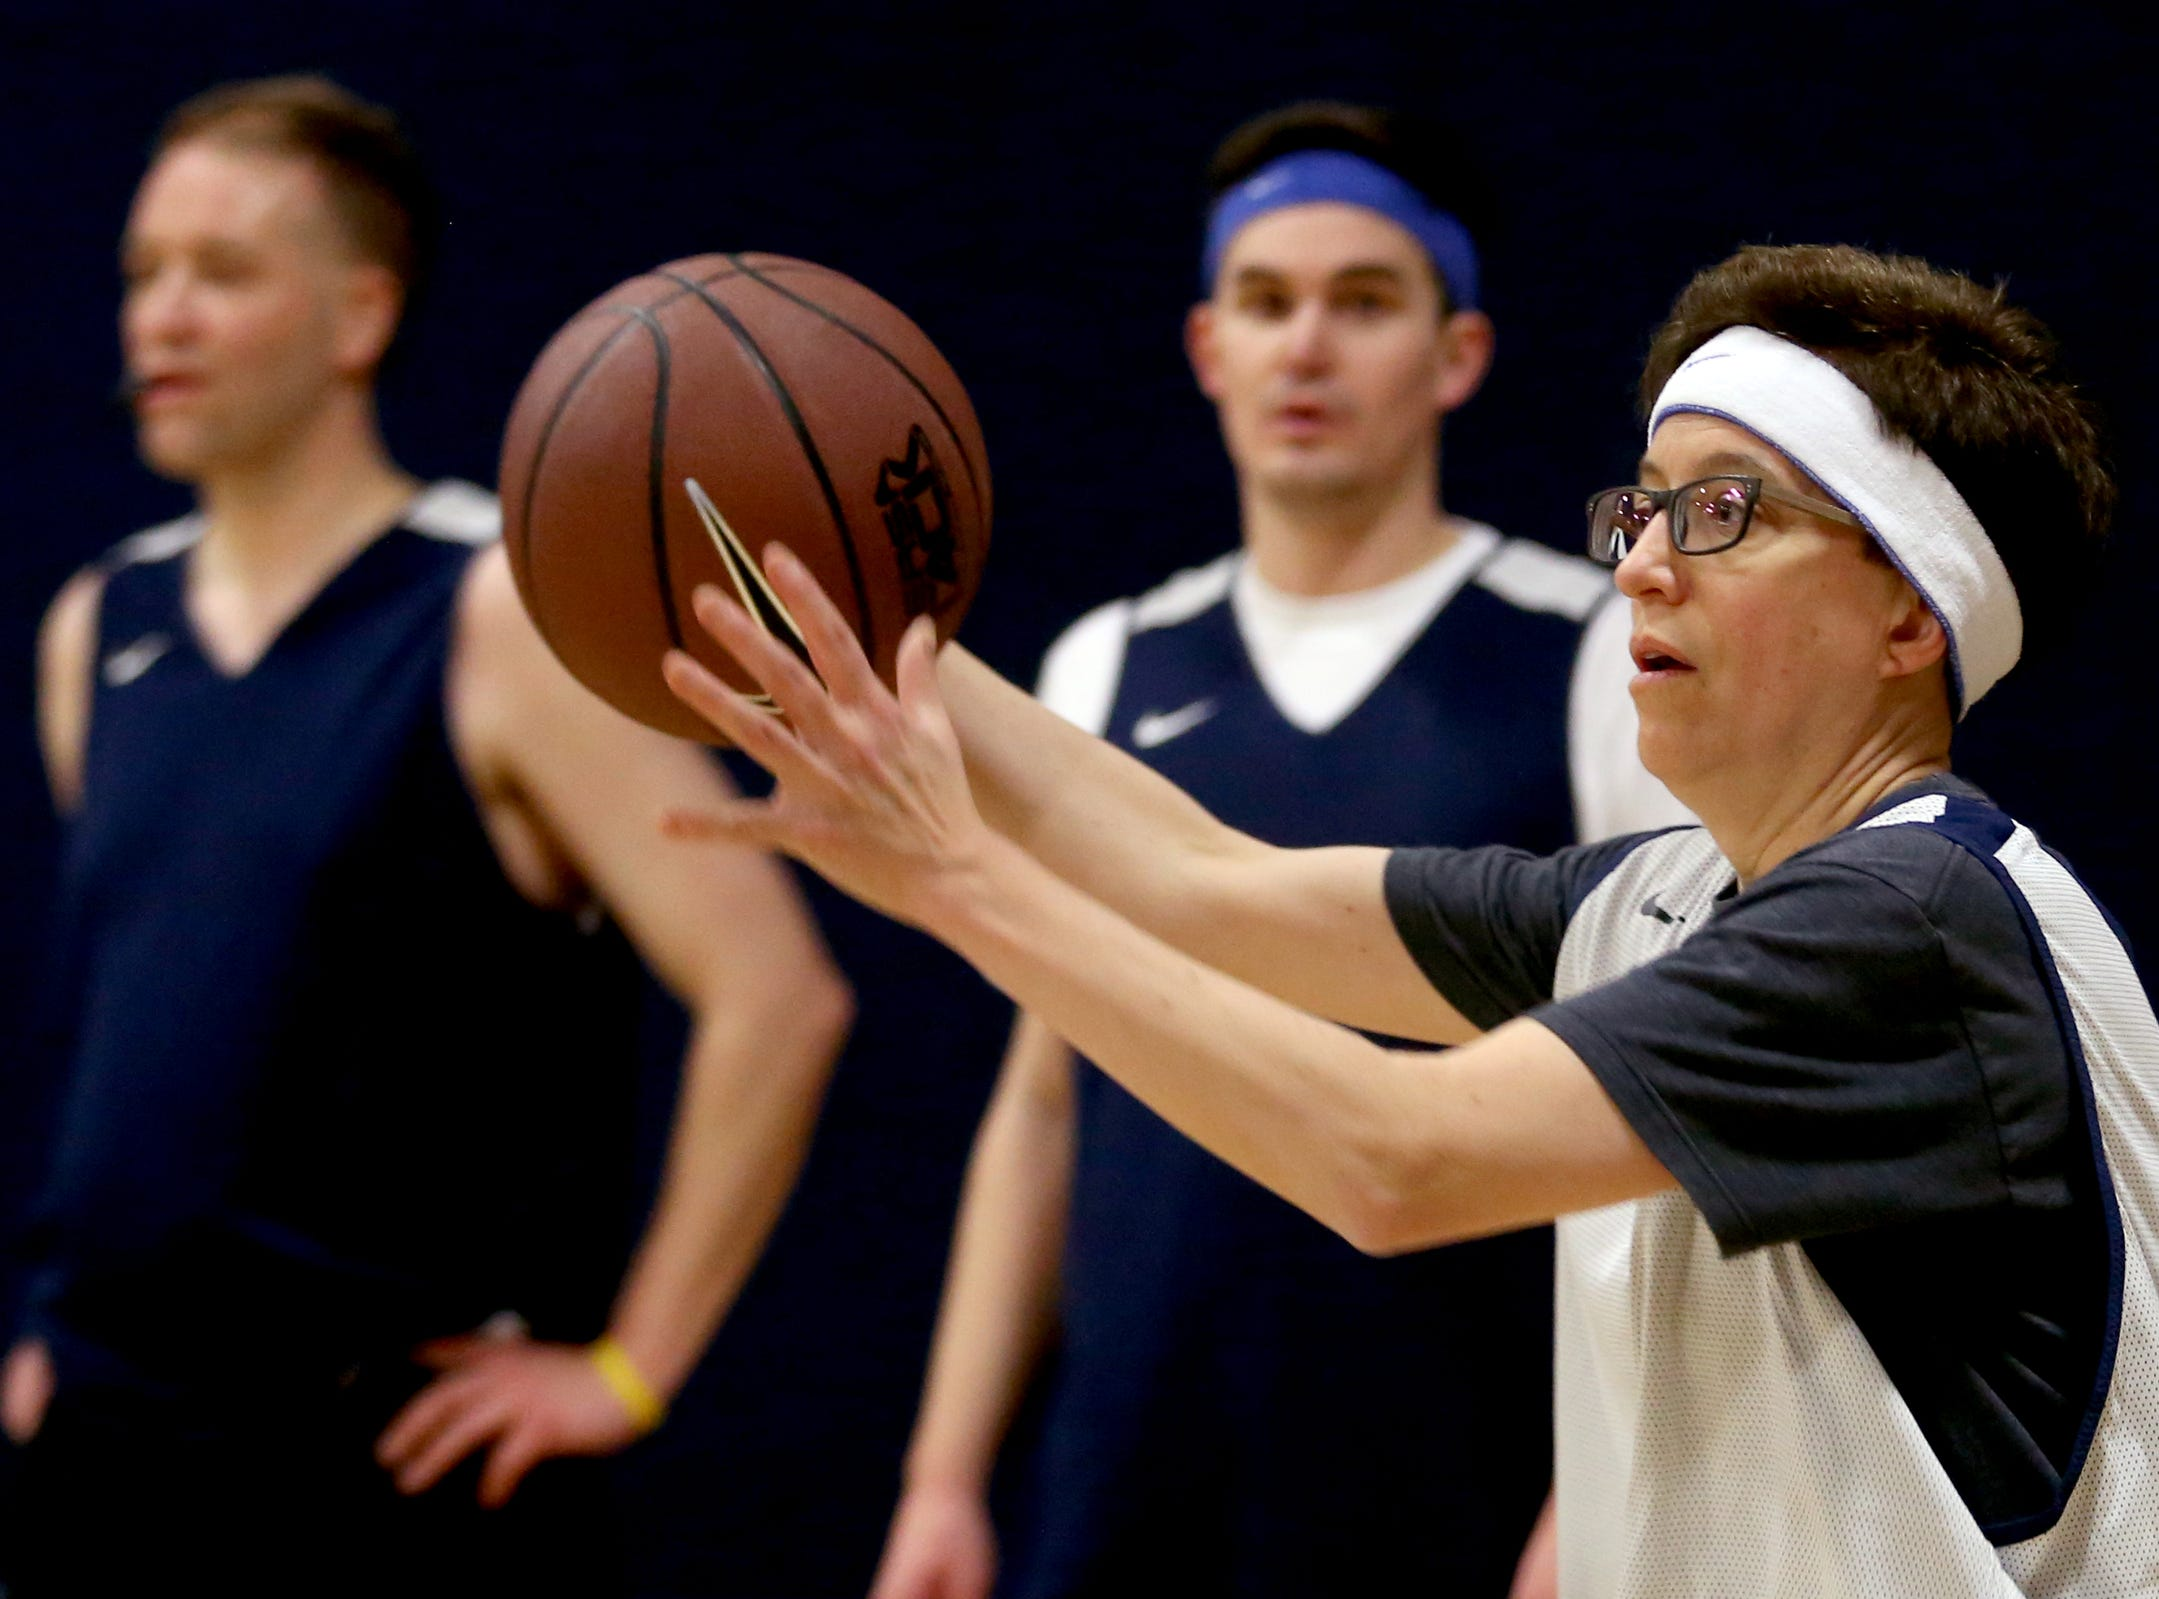 Speaker Tina Kopek competes in the second annual House vs. Senate charity basketball tournament at the Boys & Girls Club in Salem on March 13, 2019. The tournament raised more than $10,000 for the Oregon Alliance of Boys & Girls Clubs.